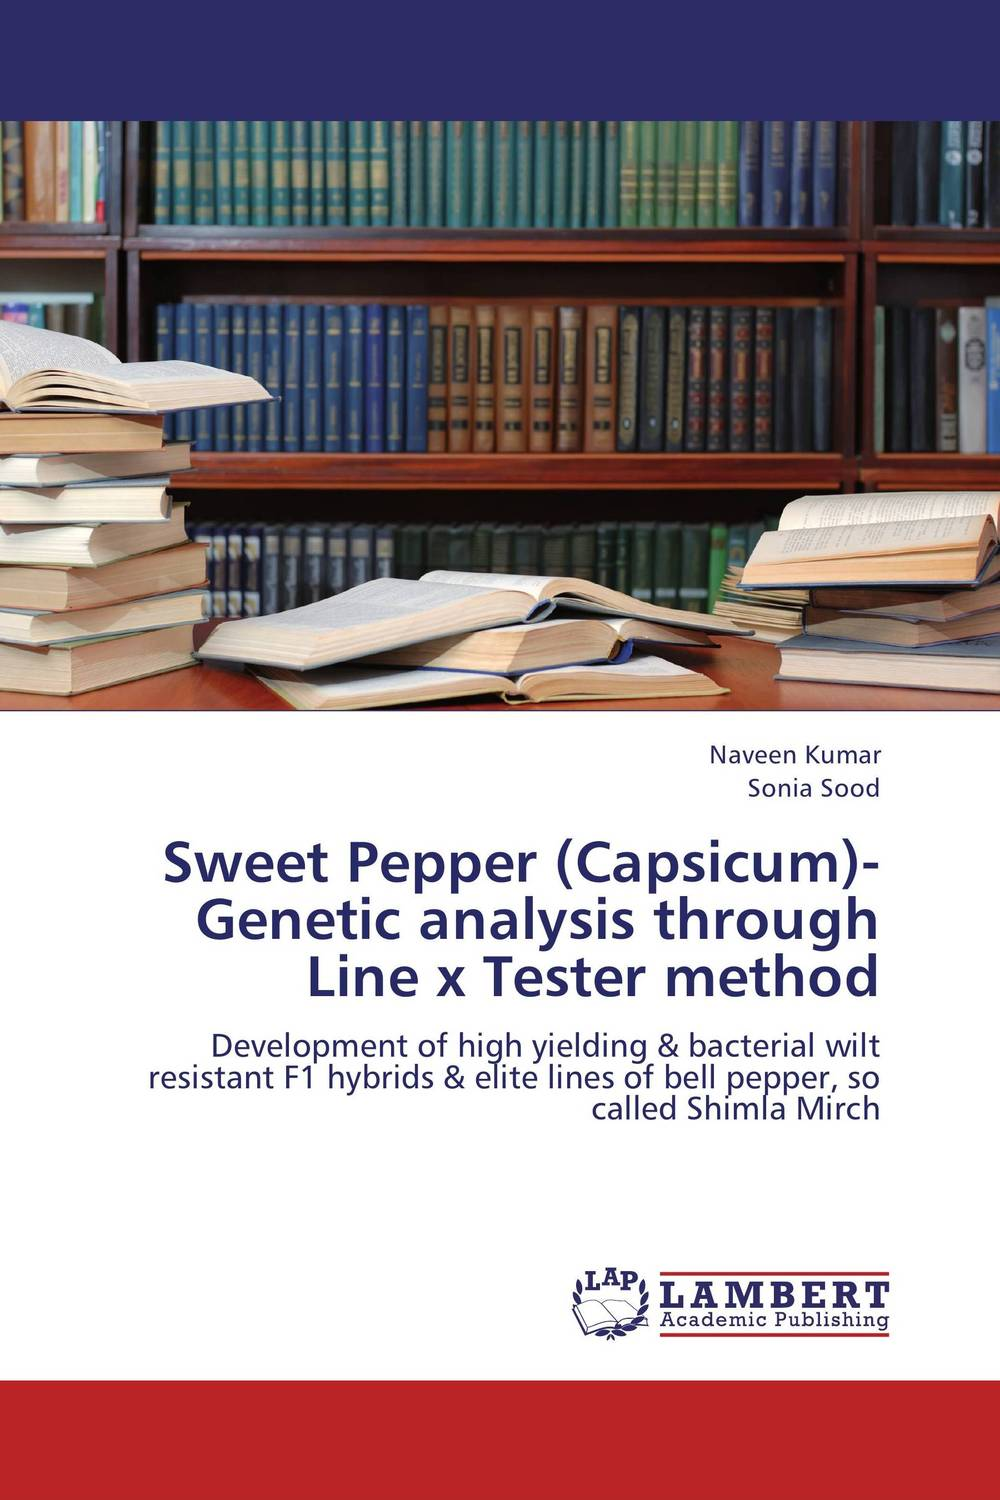 Sweet Pepper (Capsicum)- Genetic analysis through Line x Tester method analysis of bacterial colonization on gypsum casts